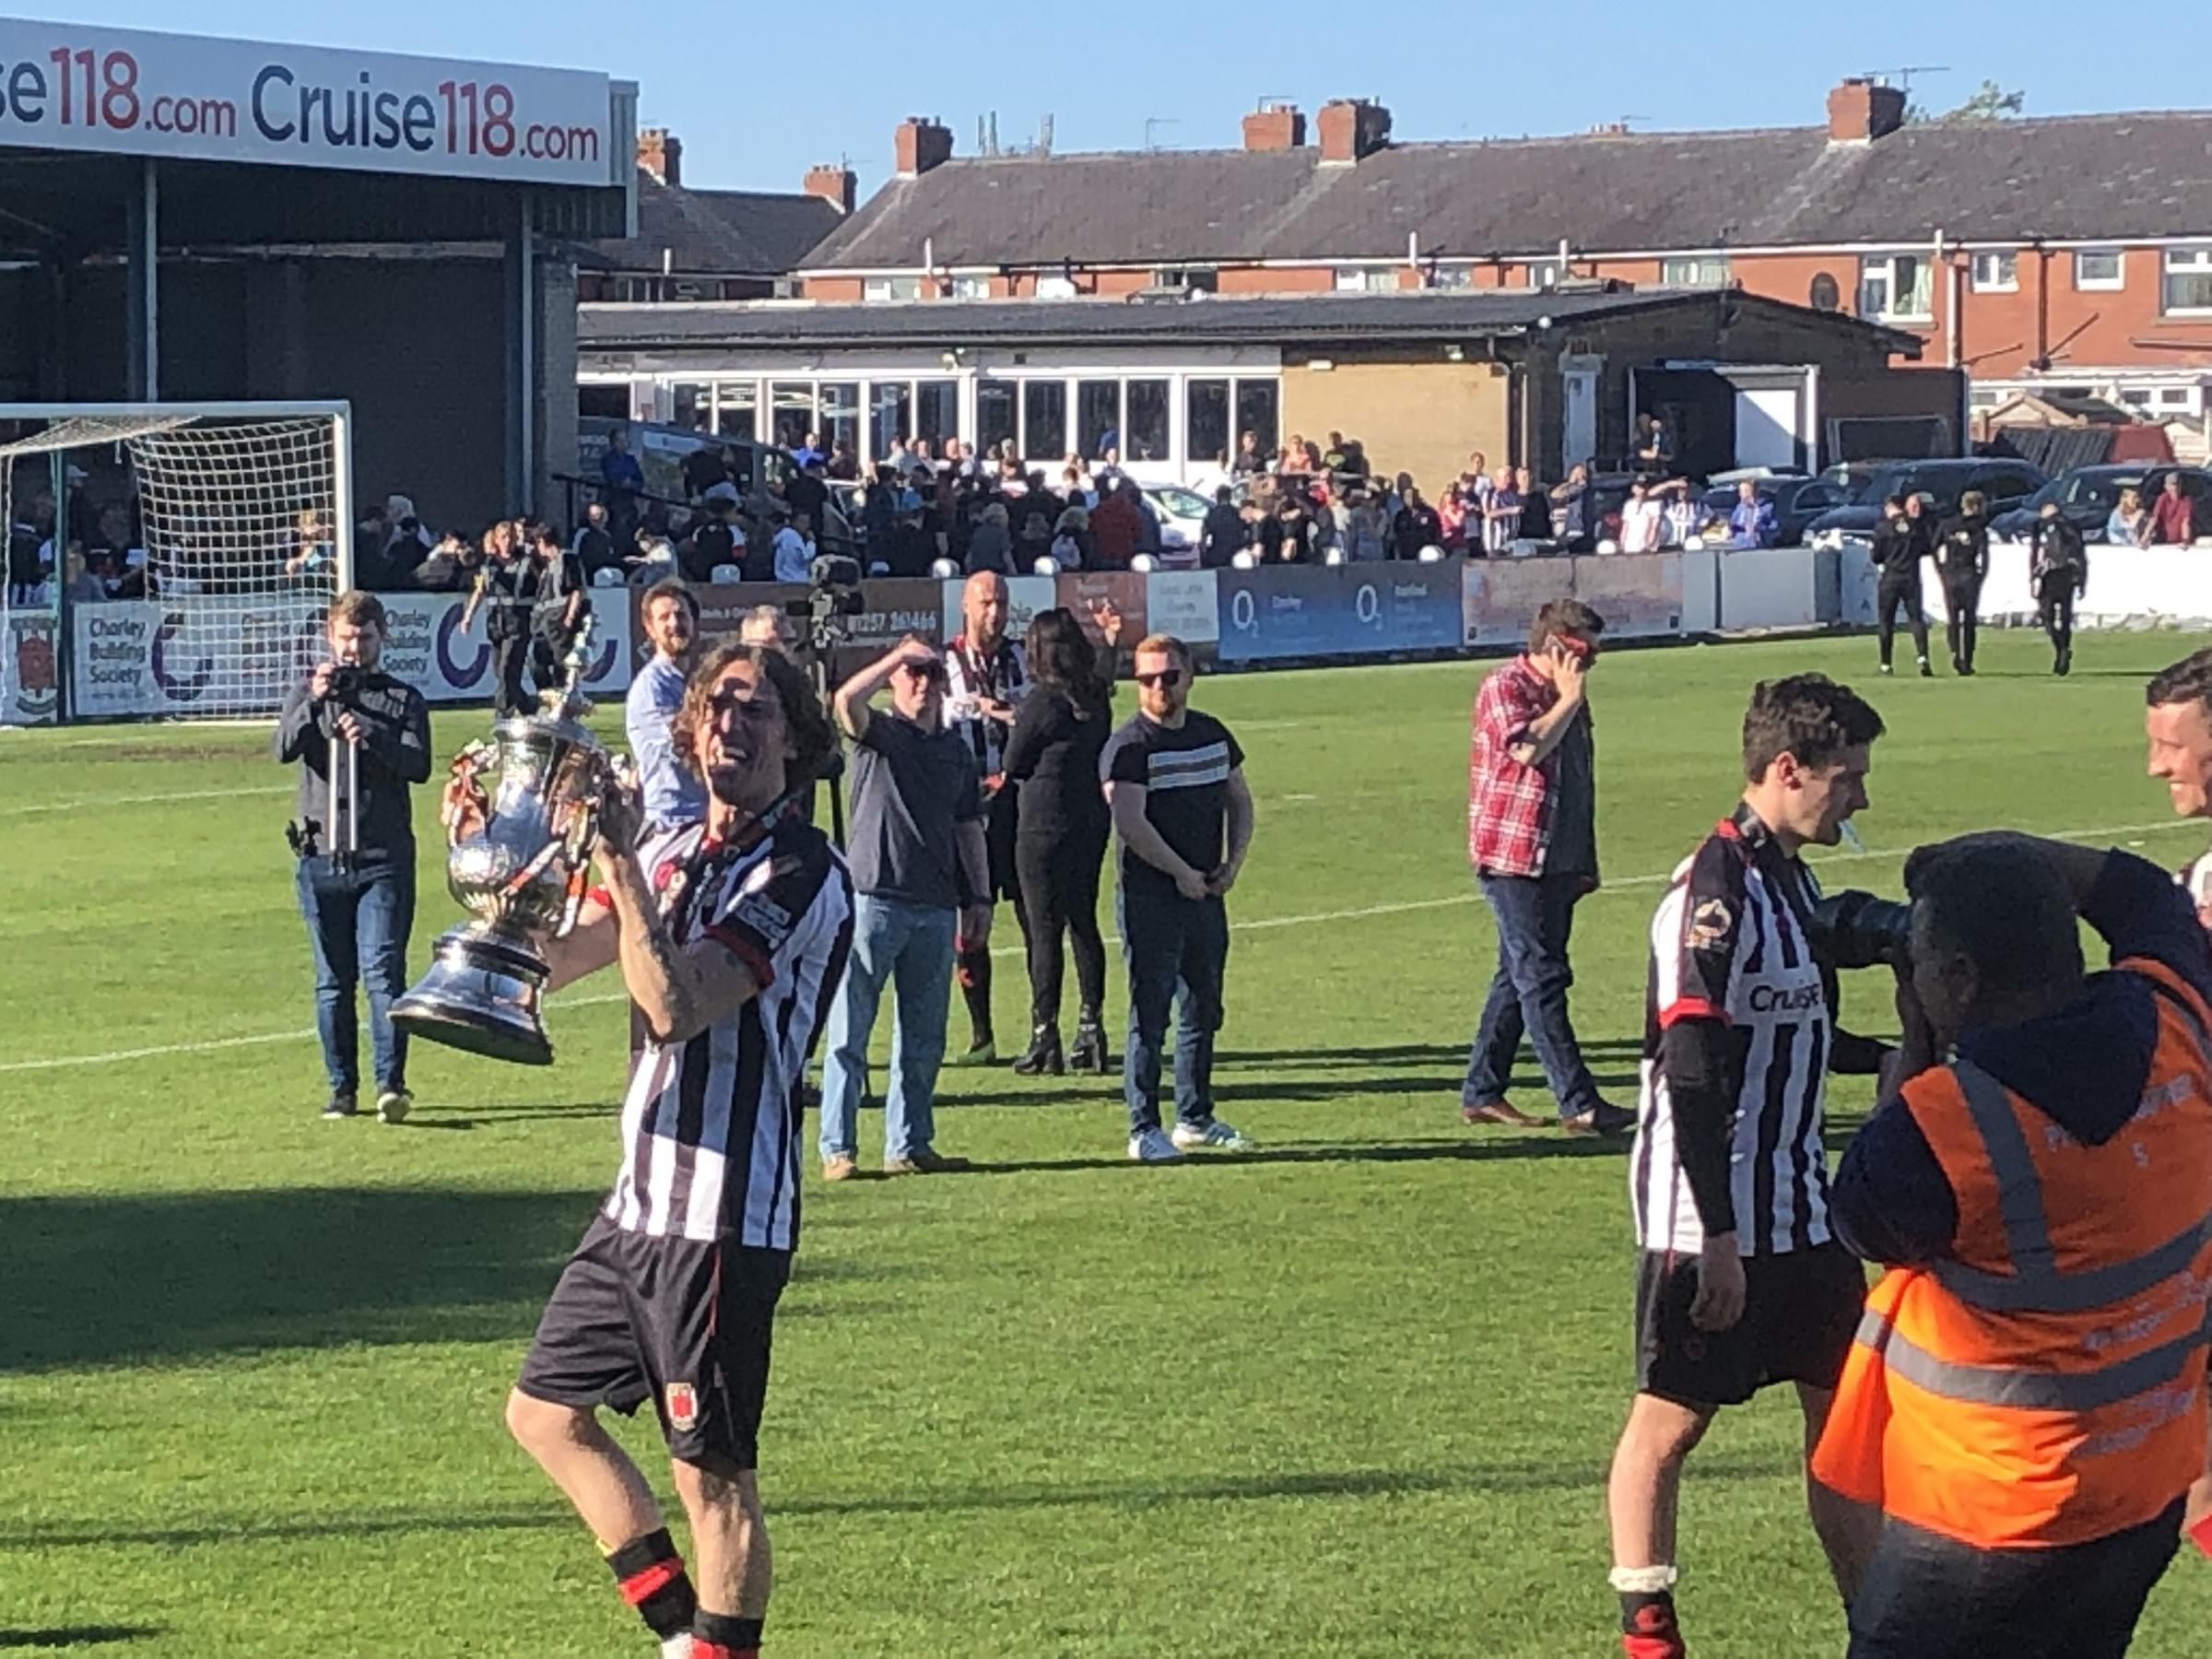 Josh Wilson shows off the National League North promotion trophy following Chorley's dramatic spot kick win